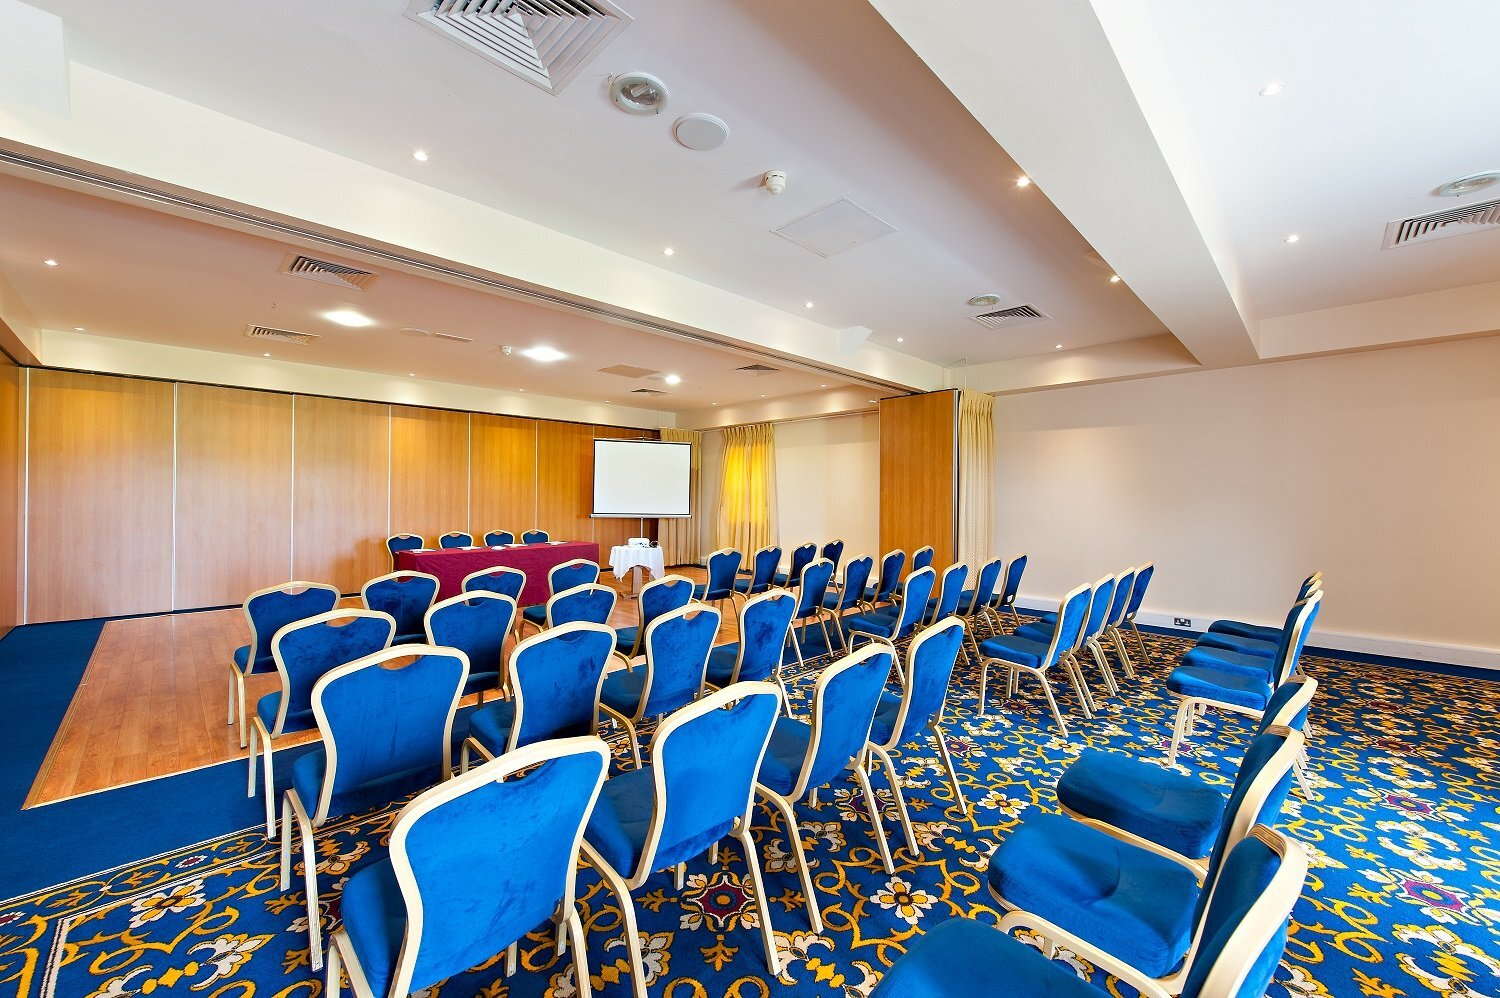 meeting-and-conference-facilities-near-swords.jpg